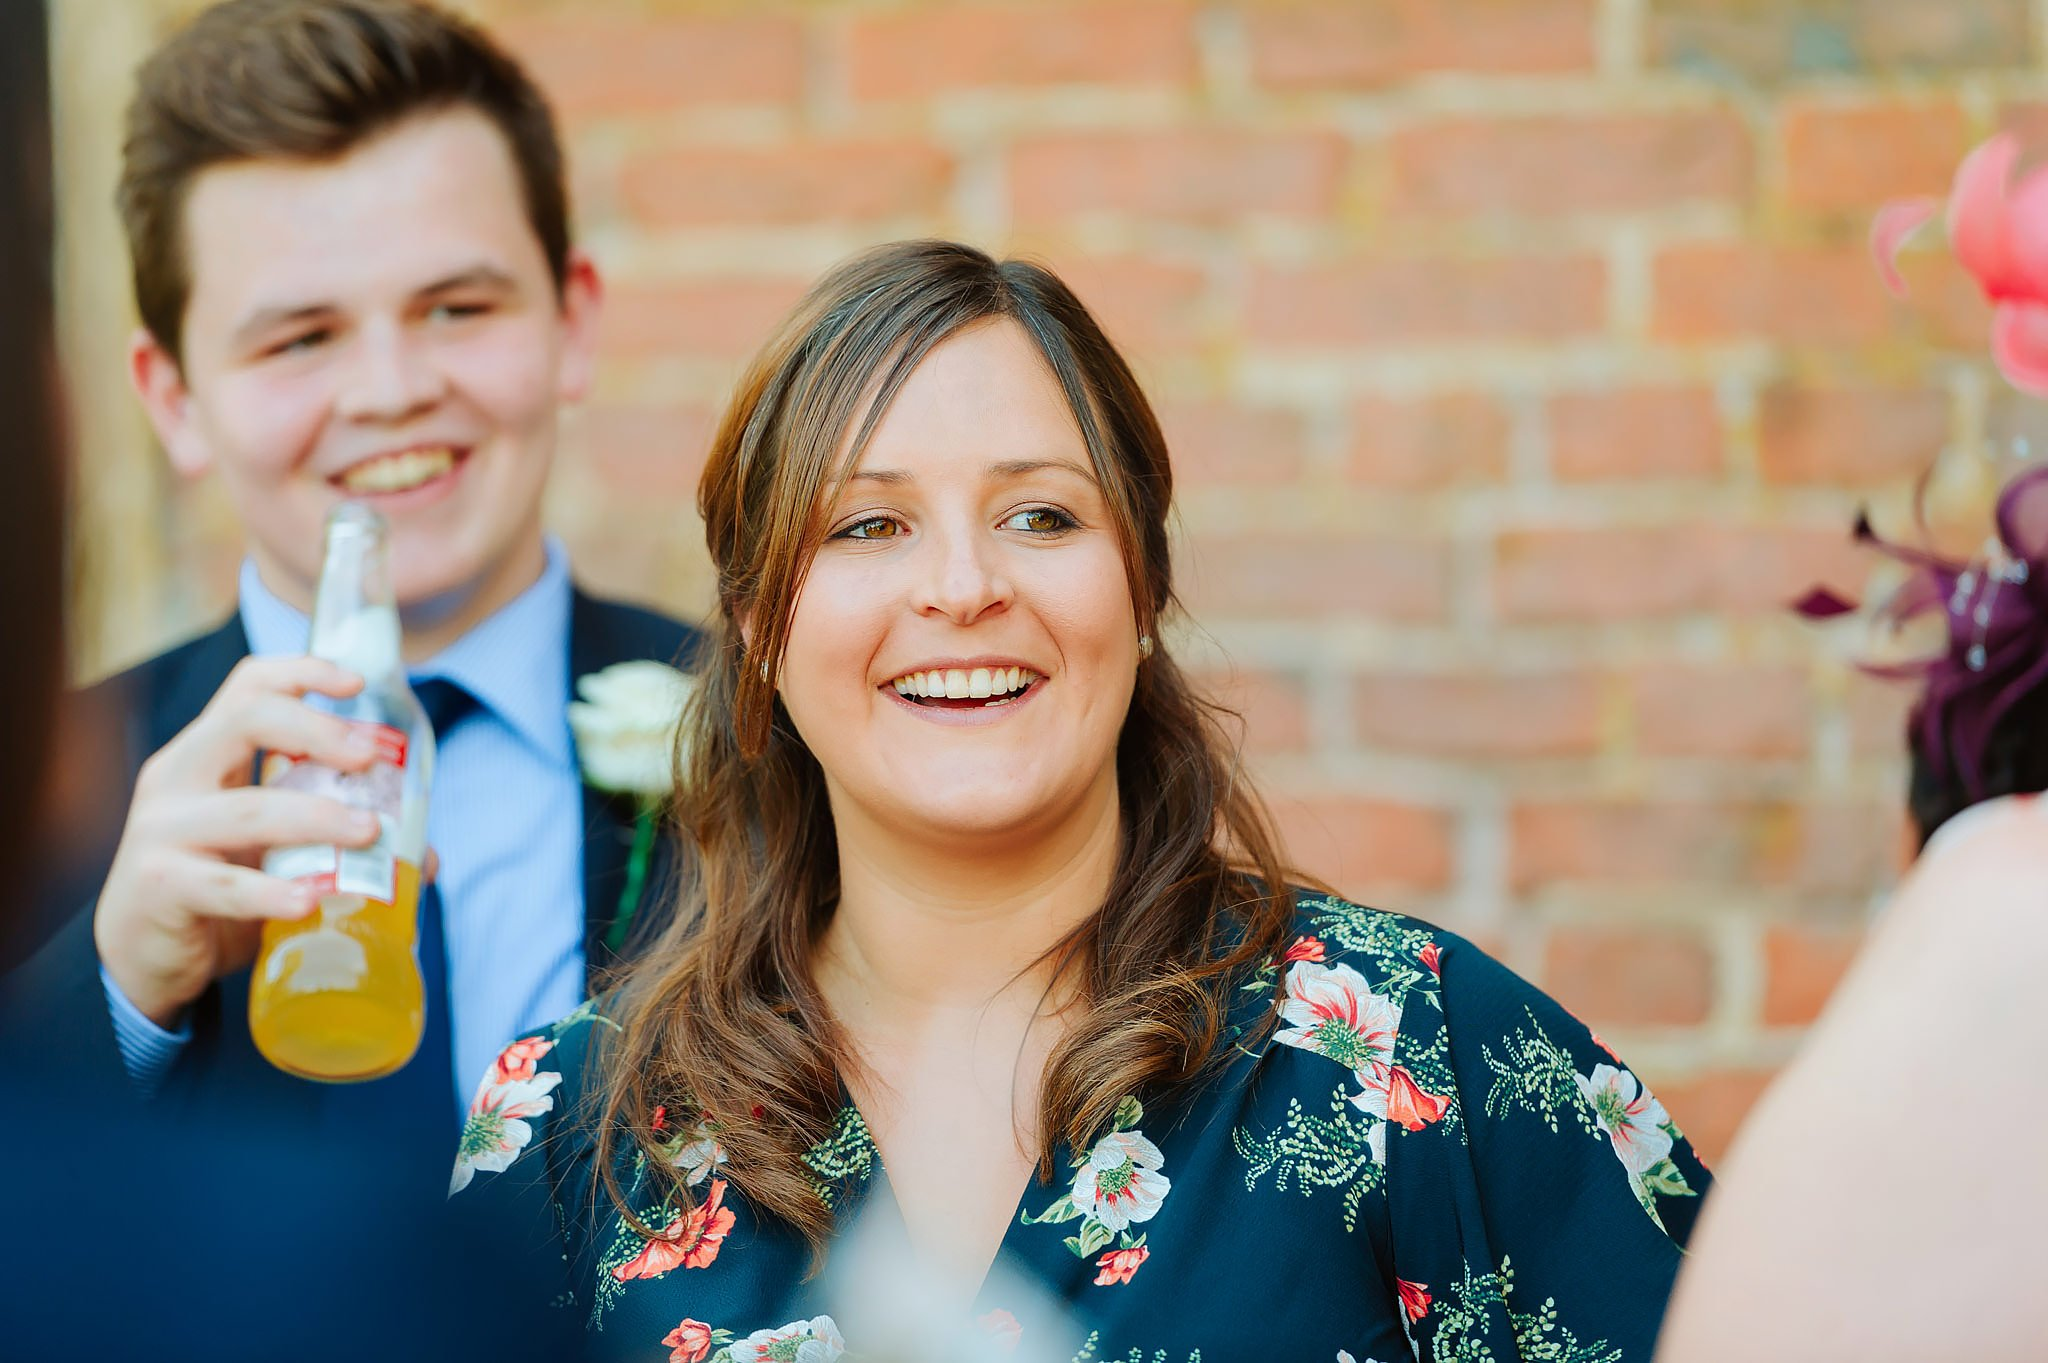 Wedding photography at Hellens Manor in Herefordshire, West Midlands | Shelley + Ian 59